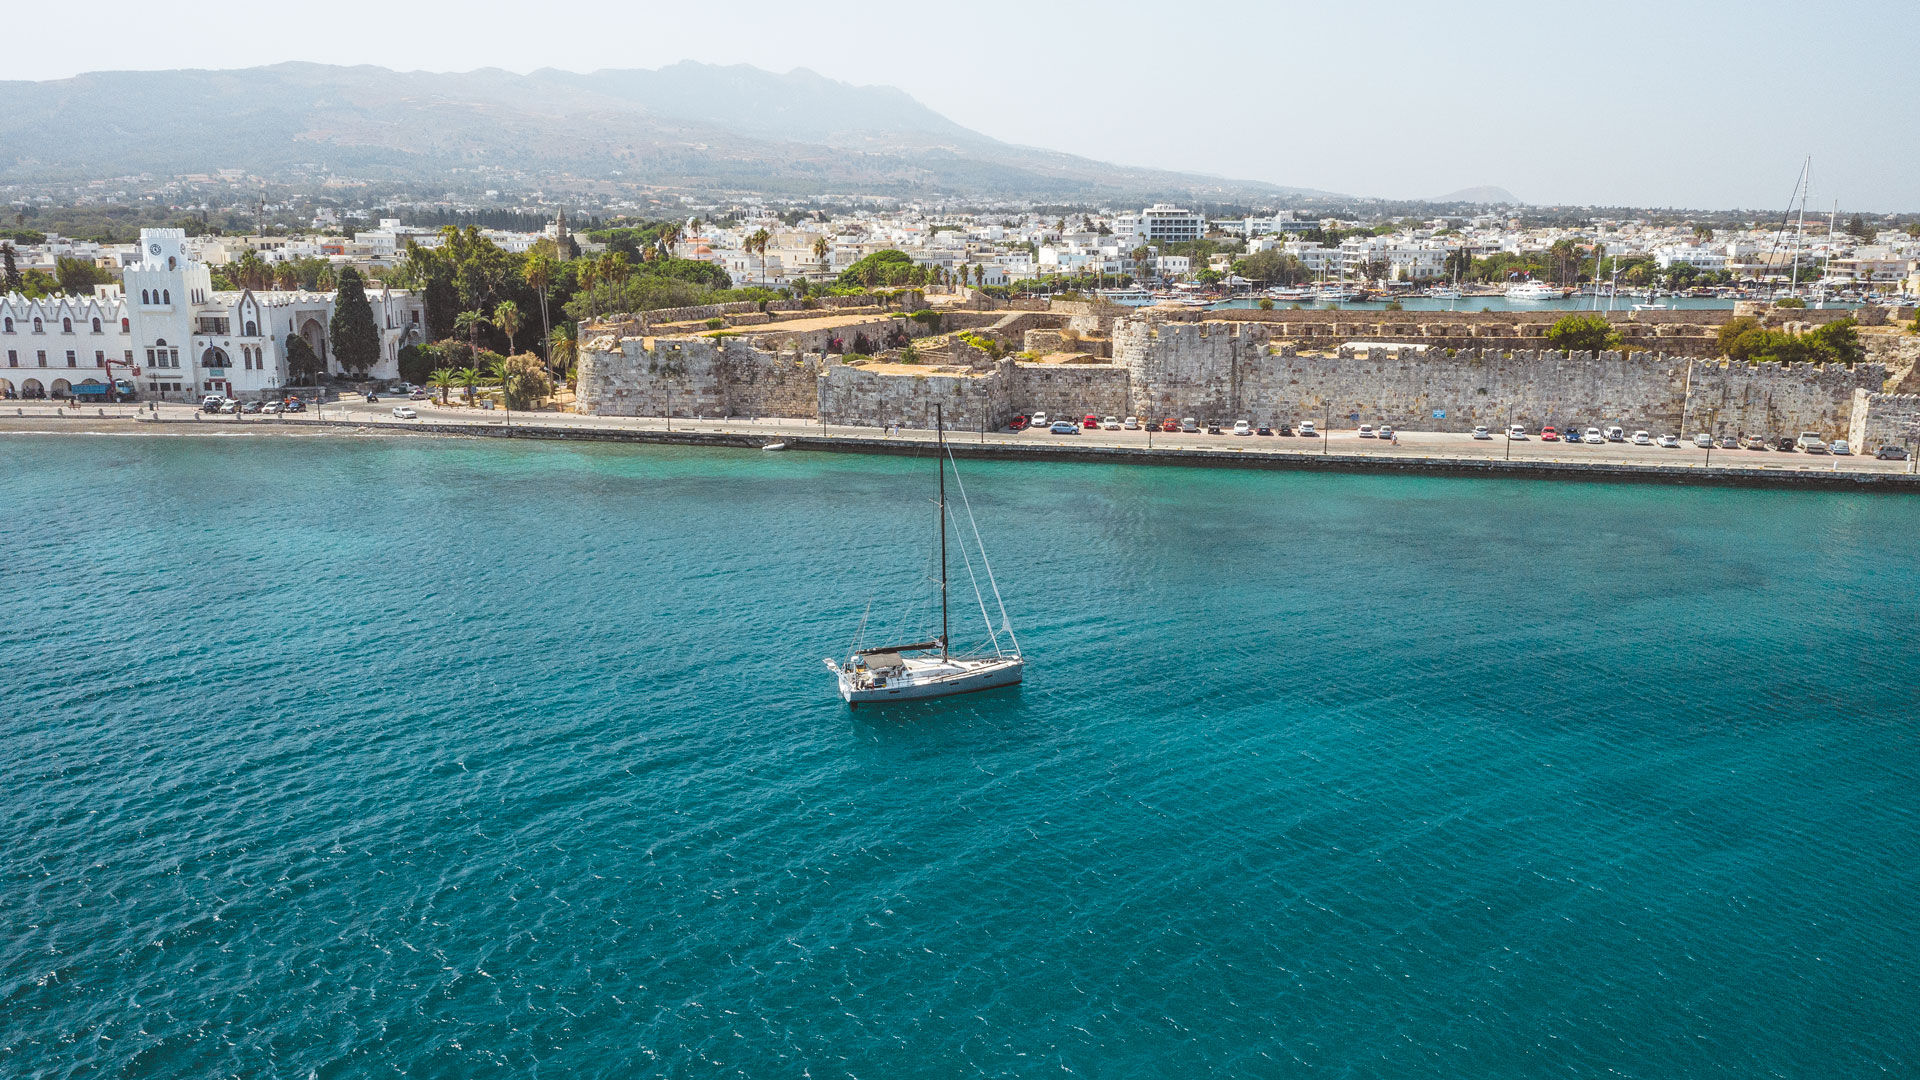 Don't forget to admire the seaside Castle of Neratzia, before you leave Kos harbour